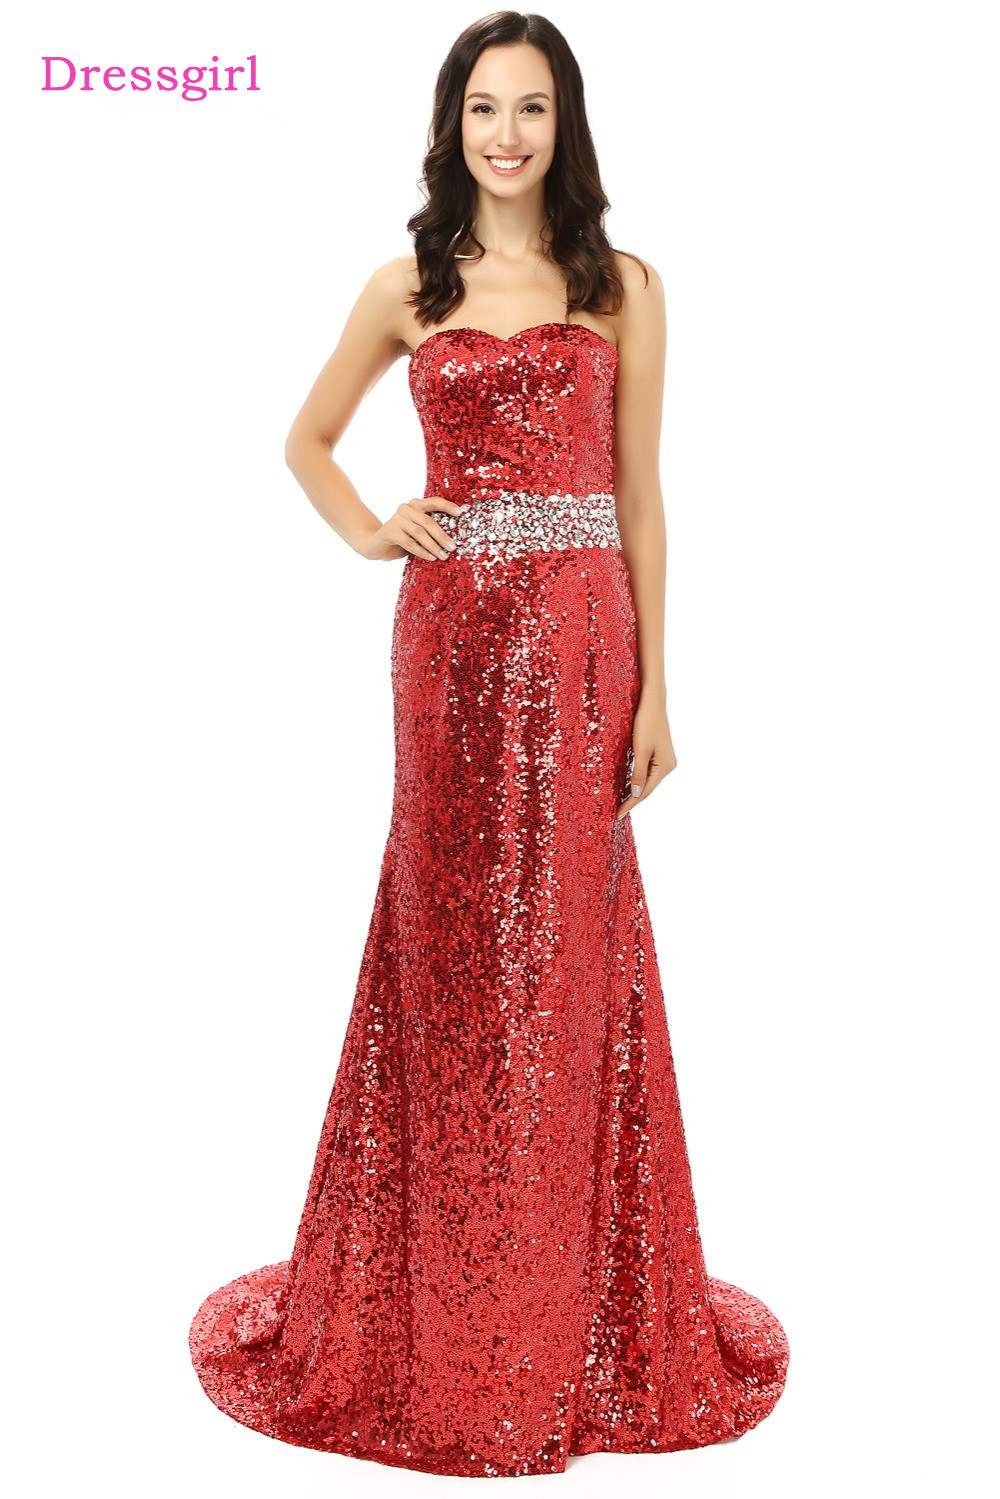 81bd1eea2103 Sexy New 2019 Prom Dresses Mermaid Sweetheart Red Black Squins Sparkle  Beaded Prom Gown Evening Dresses Evening Gown